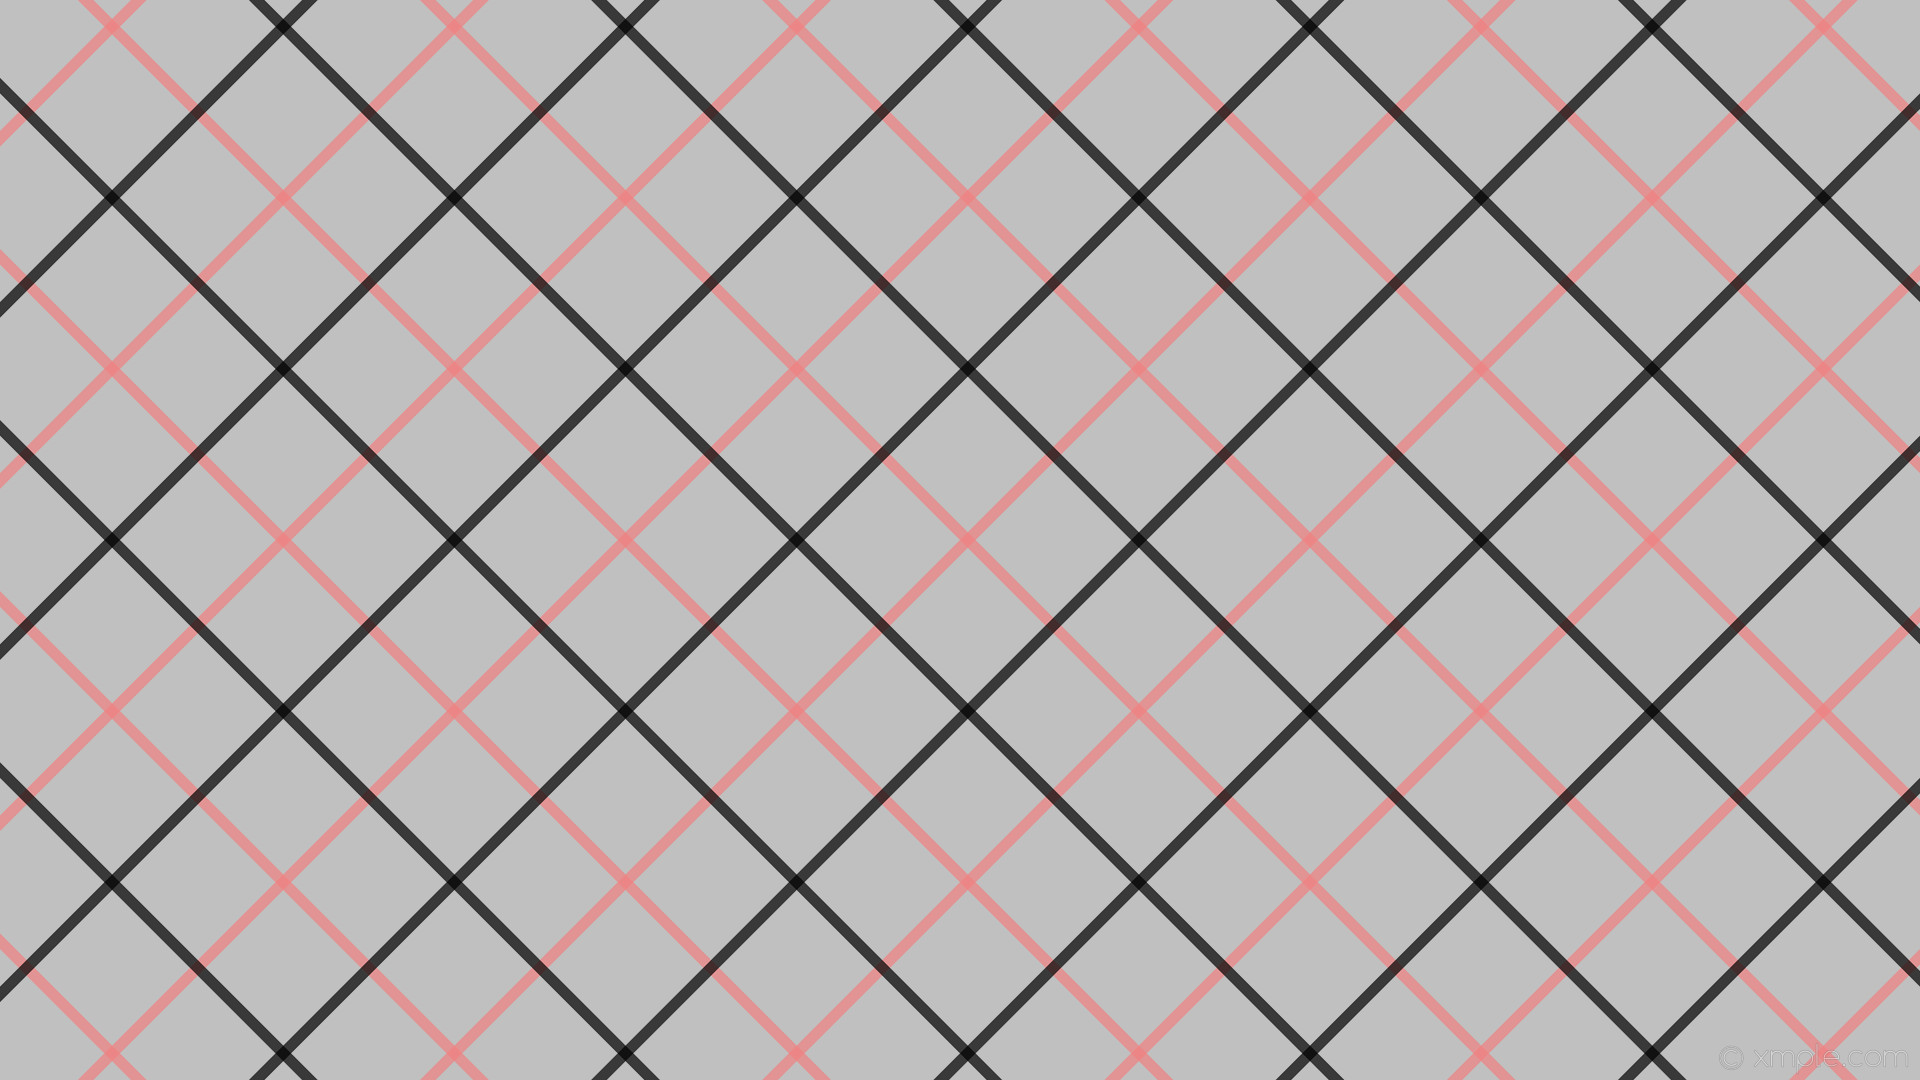 wallpaper red stripes grey black gingham tattersall silver light coral  #c0c0c0 #f08080 #000000